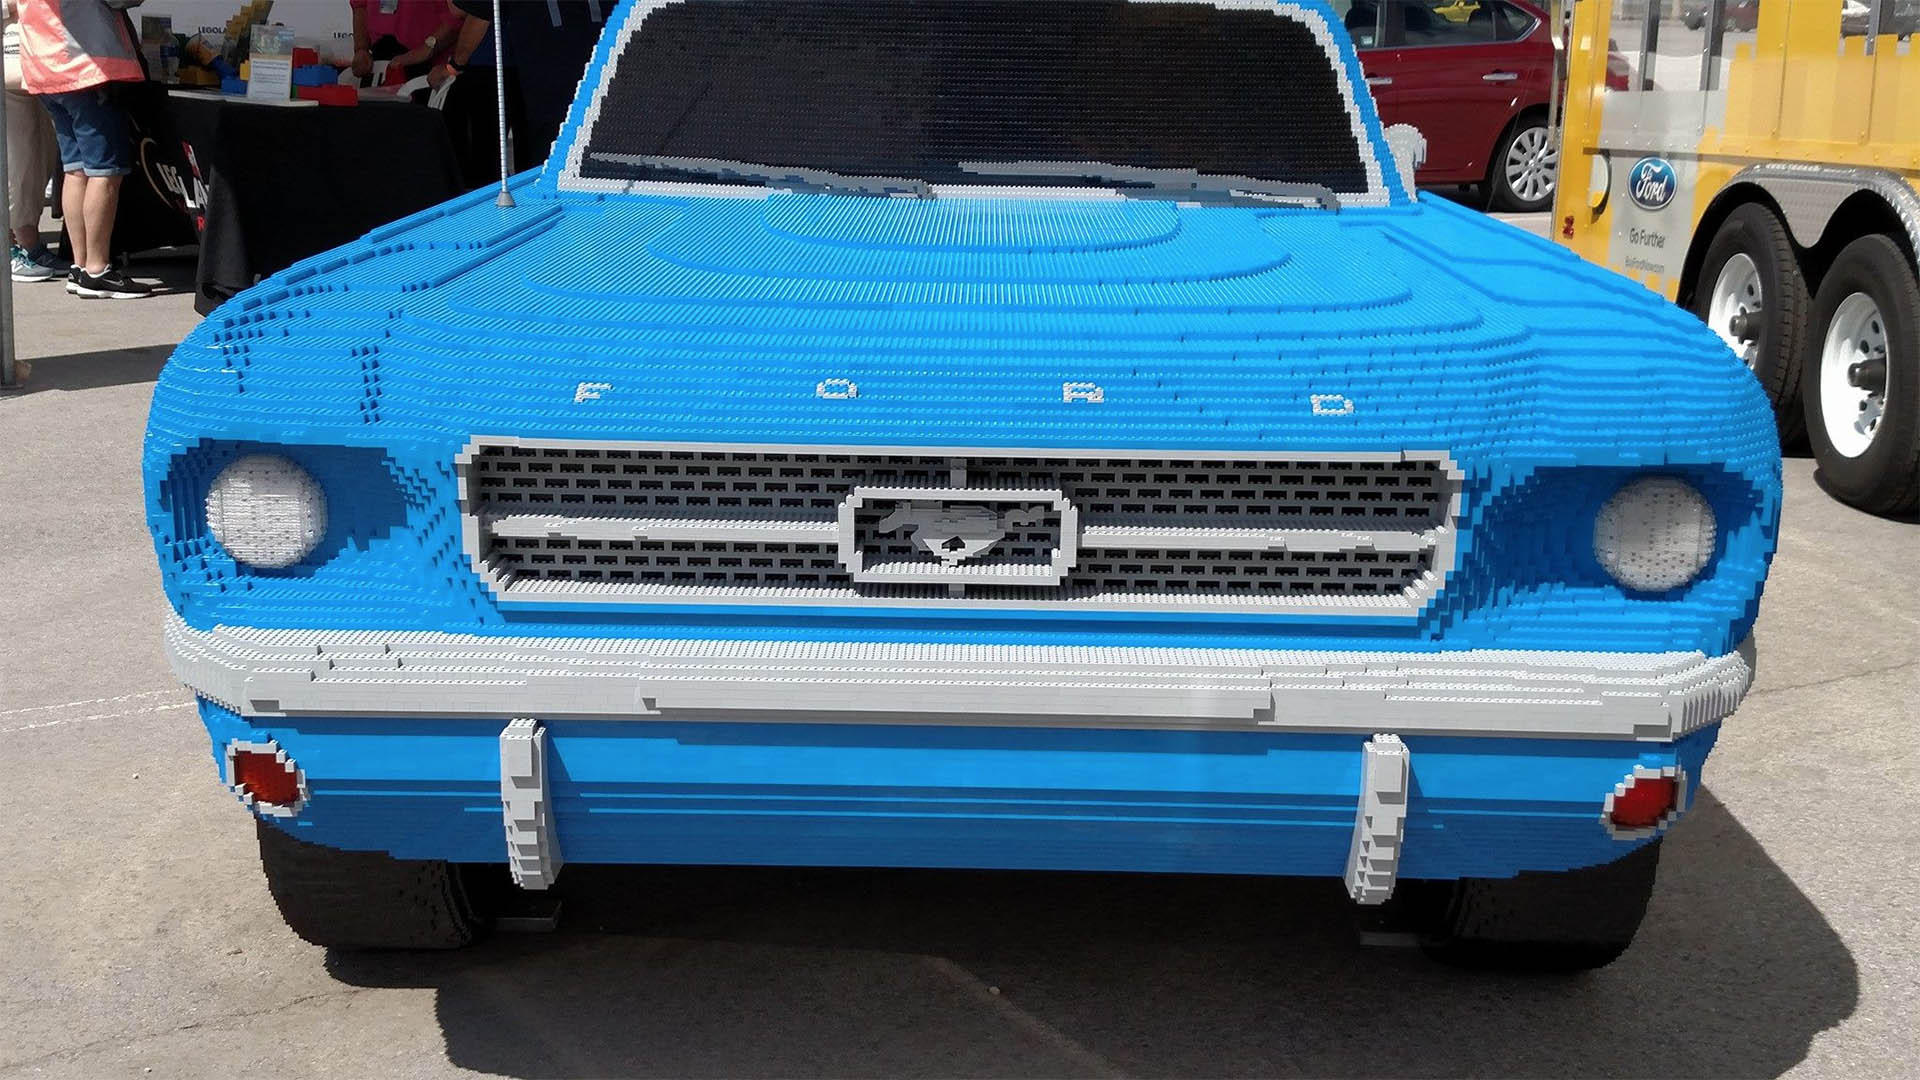 Lego Ford Full Size Car